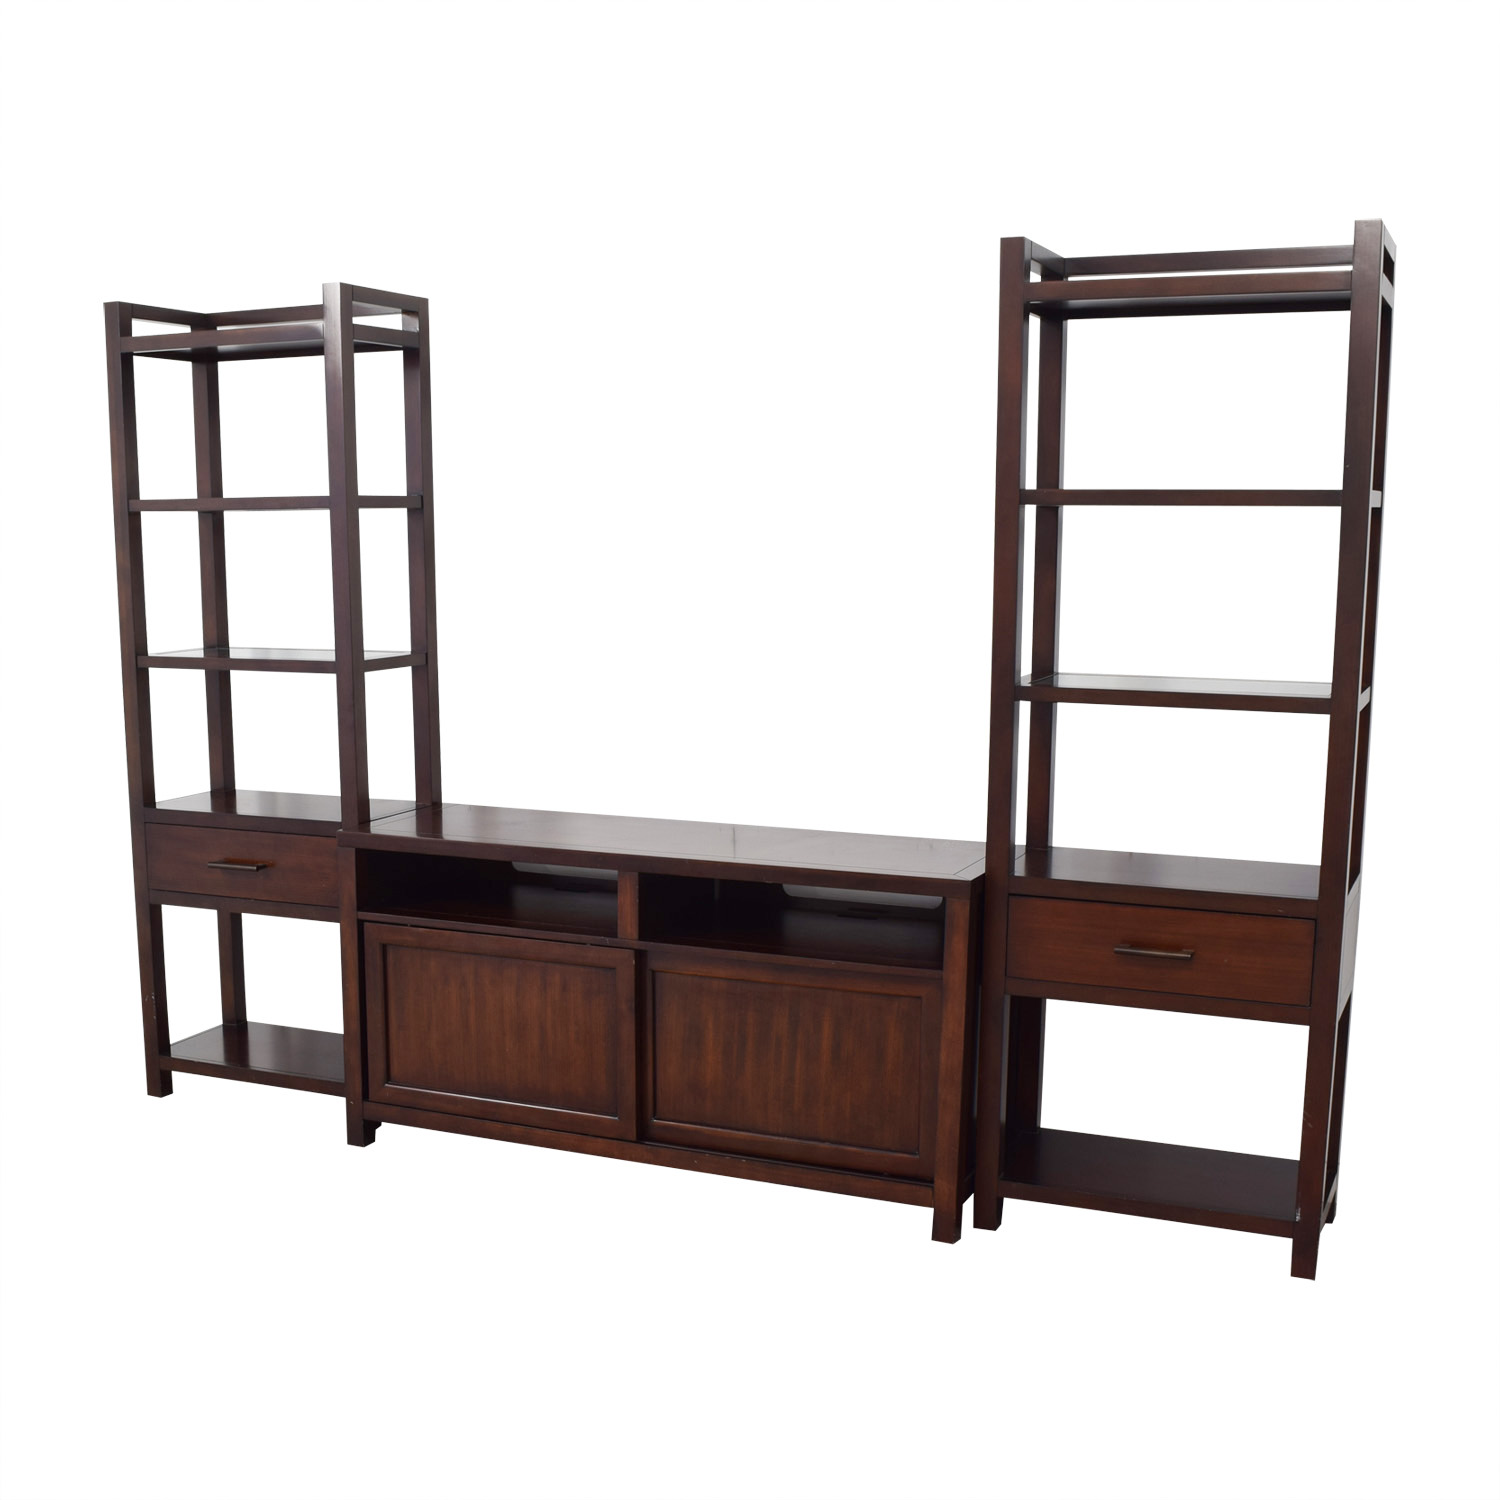 Crate & Barrel Crate & Barrel Media Console with Two Media Towers Media Units